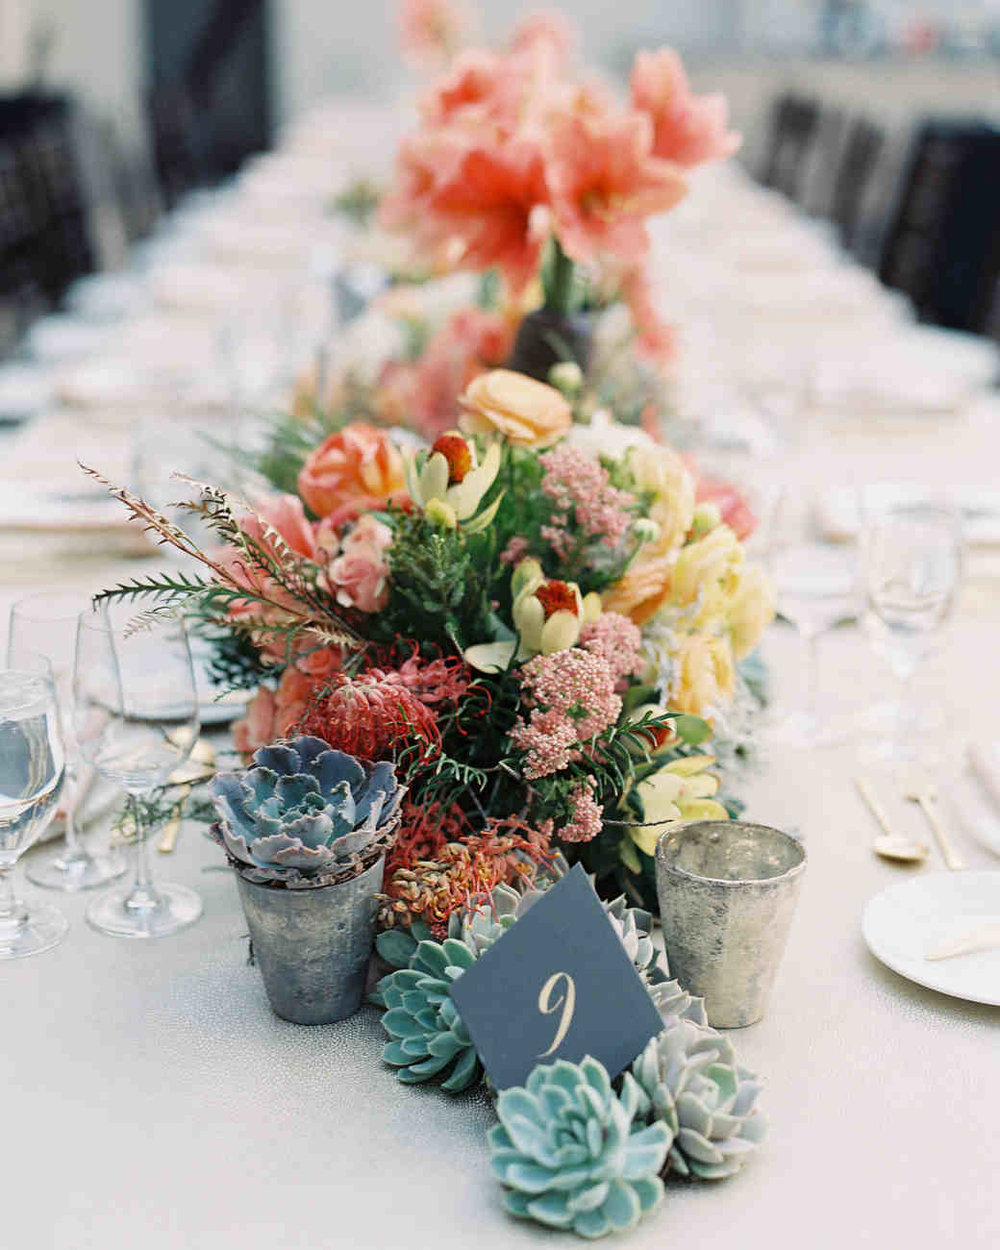 Sustainable Wedding Ideas: Succulent Centerpiece